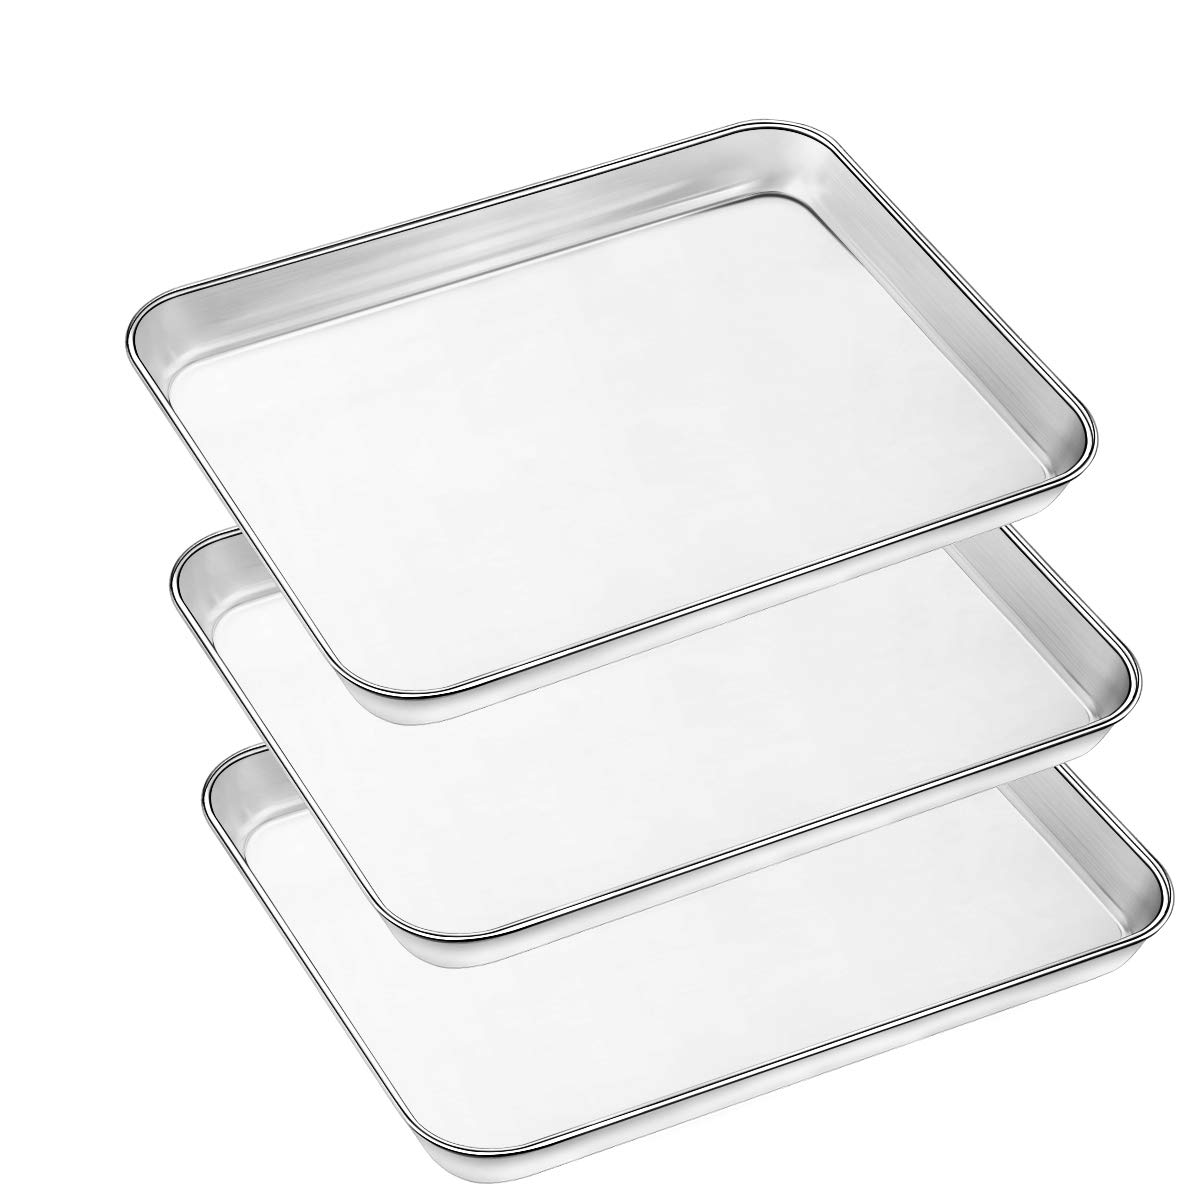 Baking Pans Sheet, 3 Piece Large Cookie Sheets Stainless Steel Baking Pan for Toaster Oven, Umite Chef Non Toxic Tray Pan, Mirror Finish, Easy Clean, Dishwasher Safe, 10 x 8 x 1 inch by Umite Chef